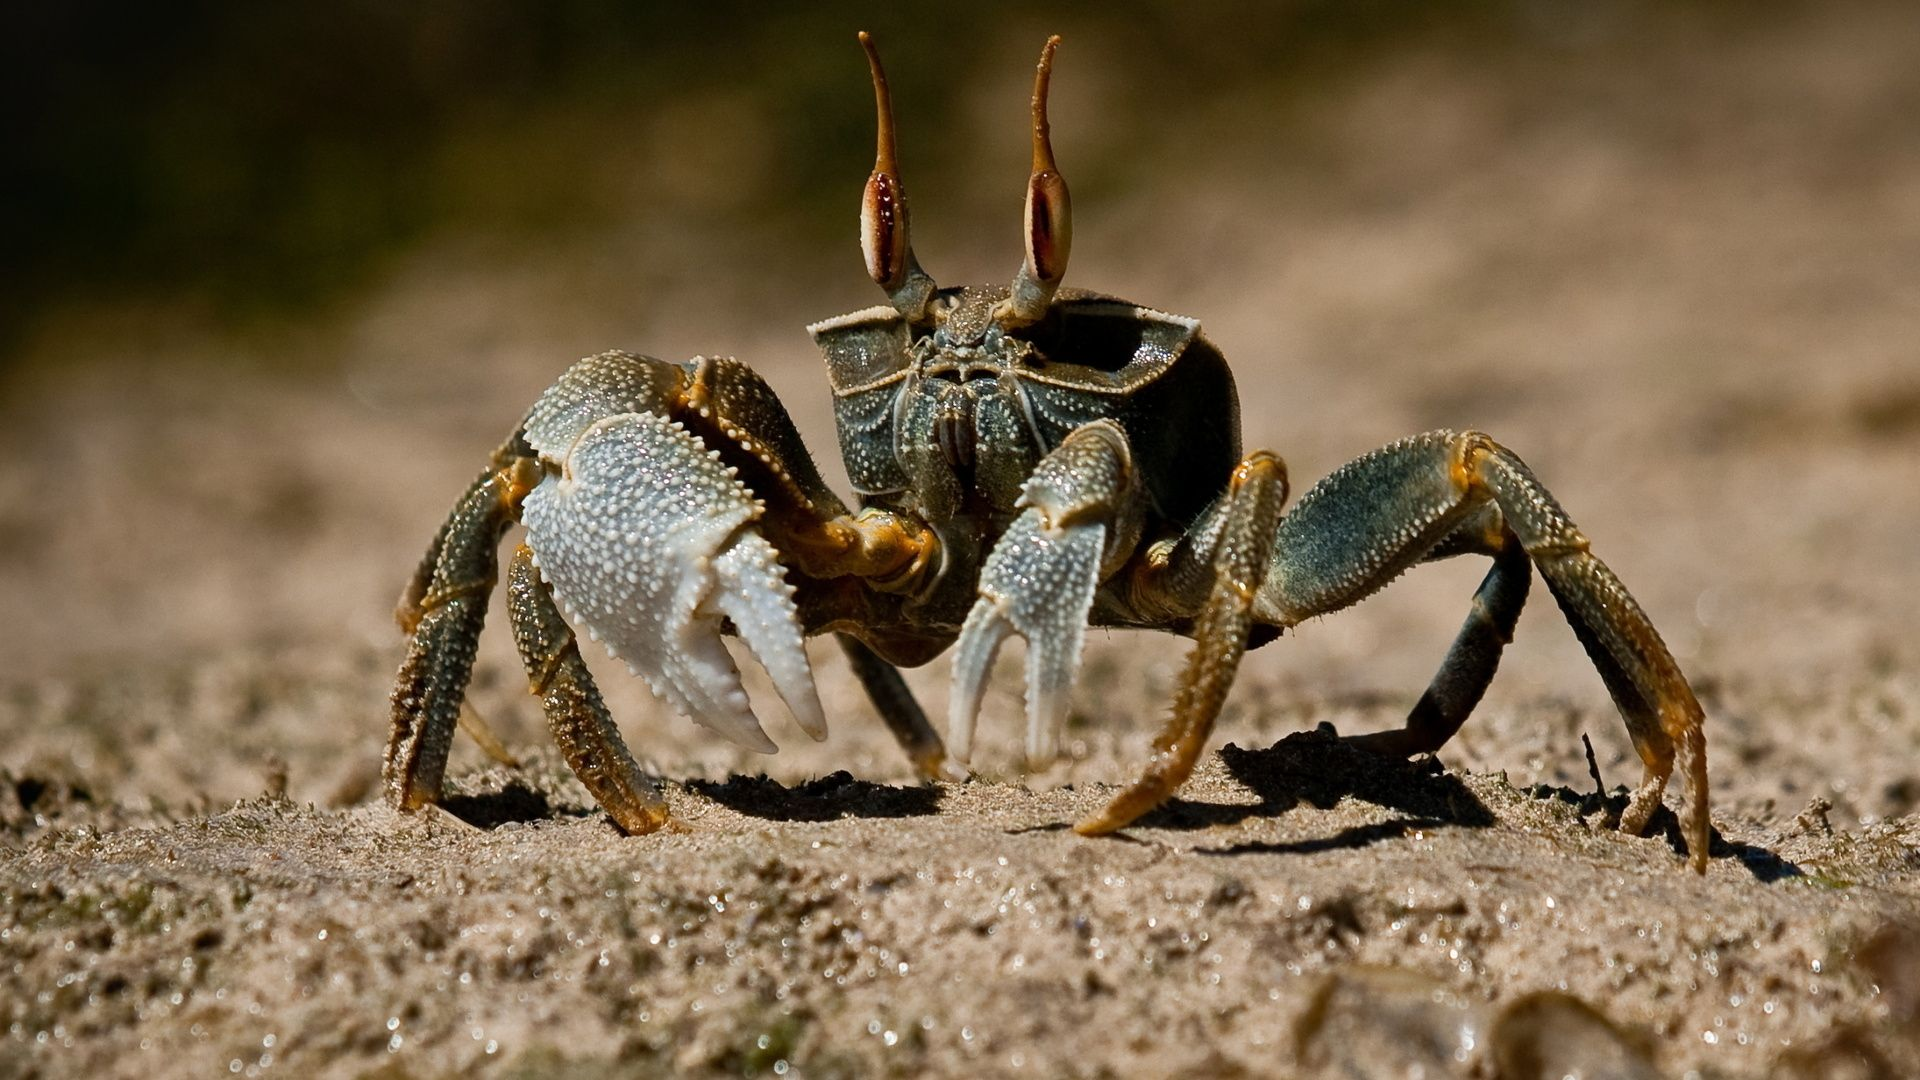 Crab hd wallpaper for laptop